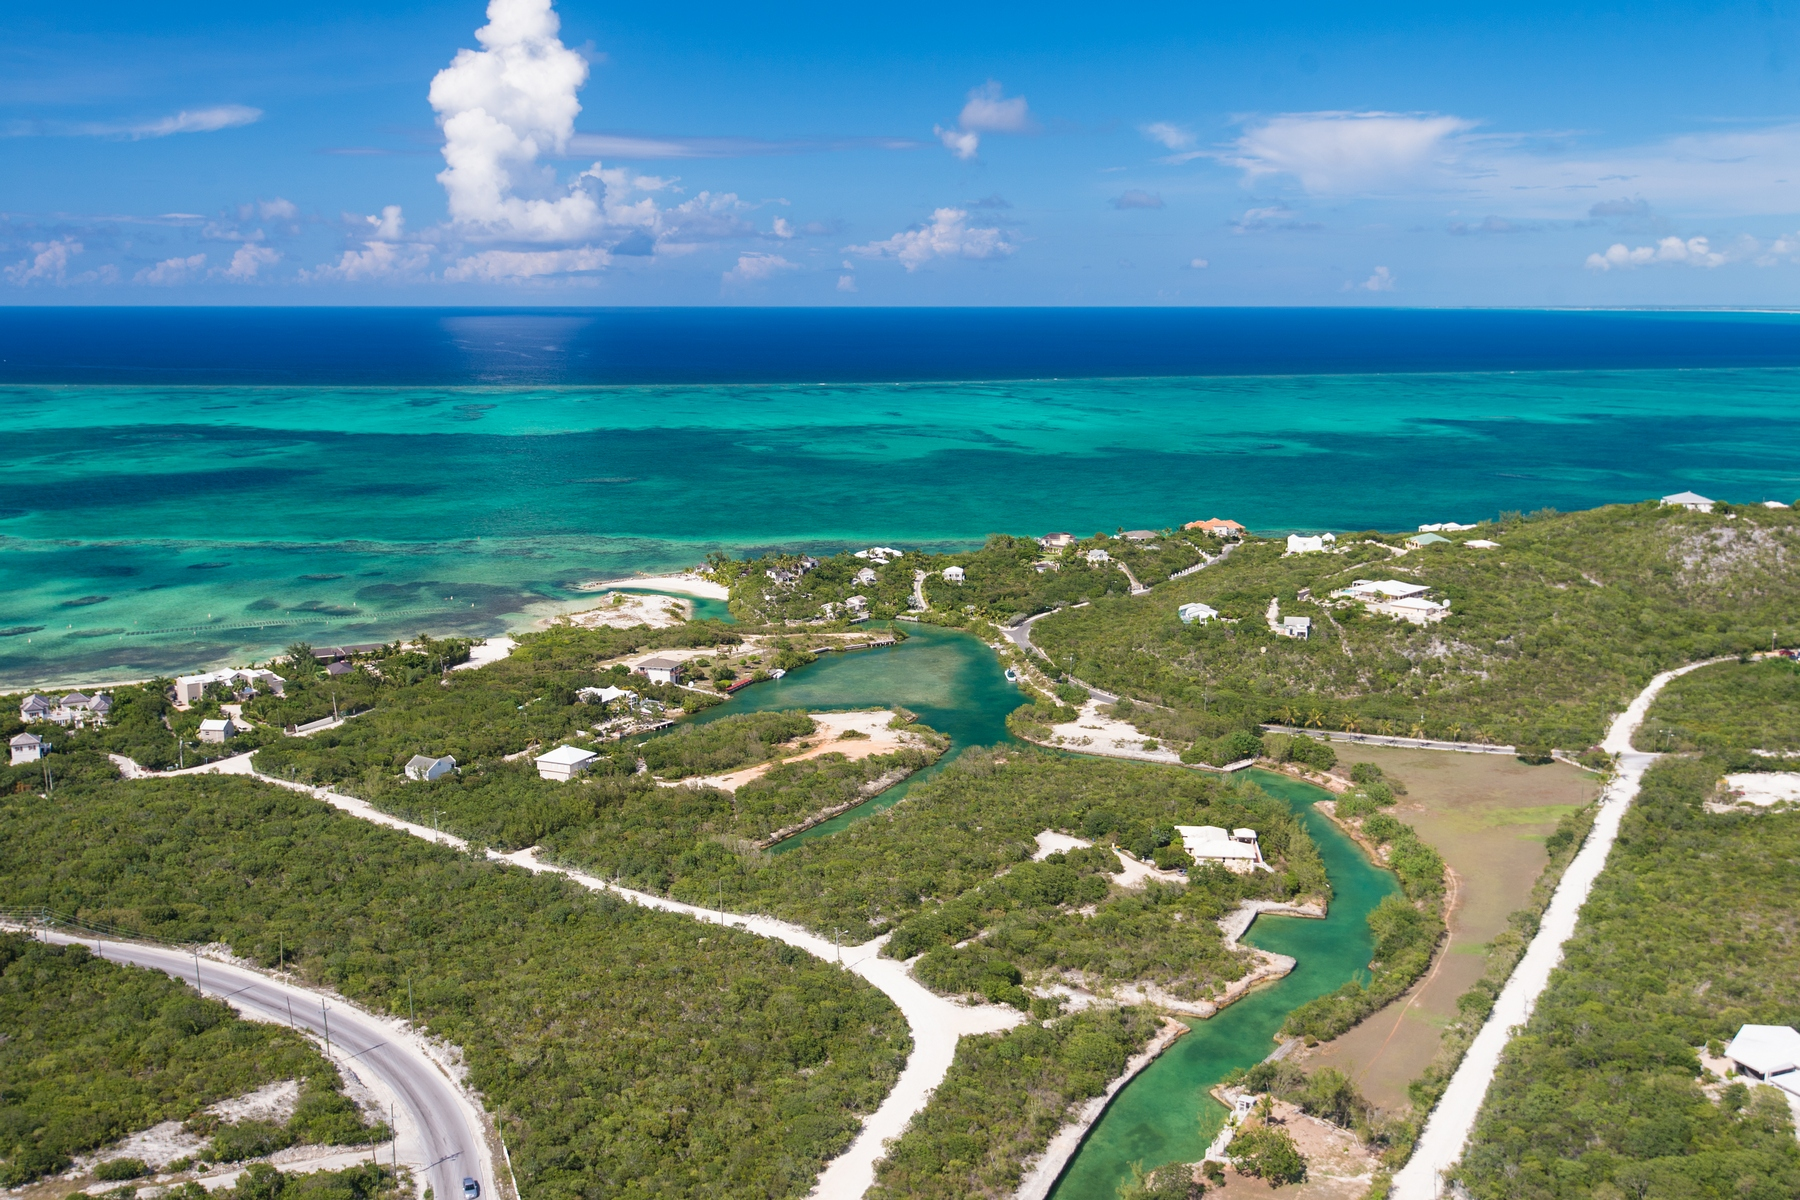 Land for Sale at Thompsons Cove Residential Canal Lotntial Land Canalfront Thompson Cove, Providenciales TCI BWI Turks And Caicos Islands